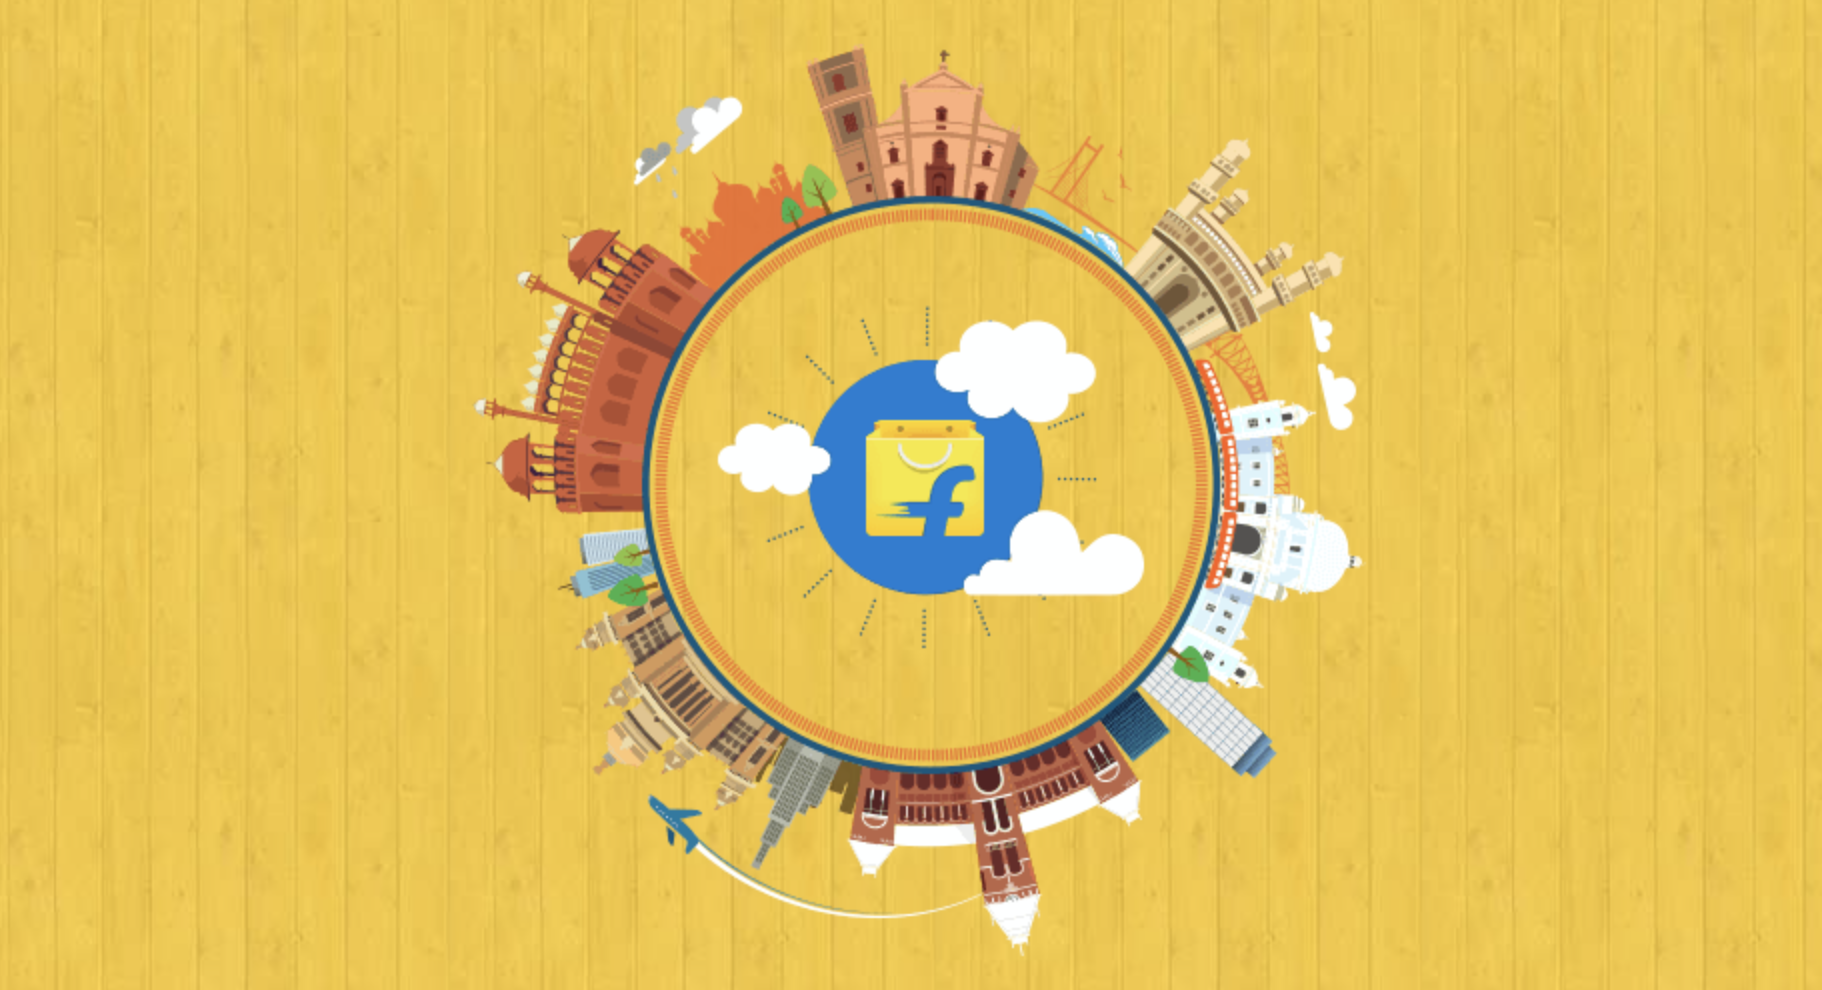 Flipkart To Buy Travel And Hotel Booking Platform Cleartrip